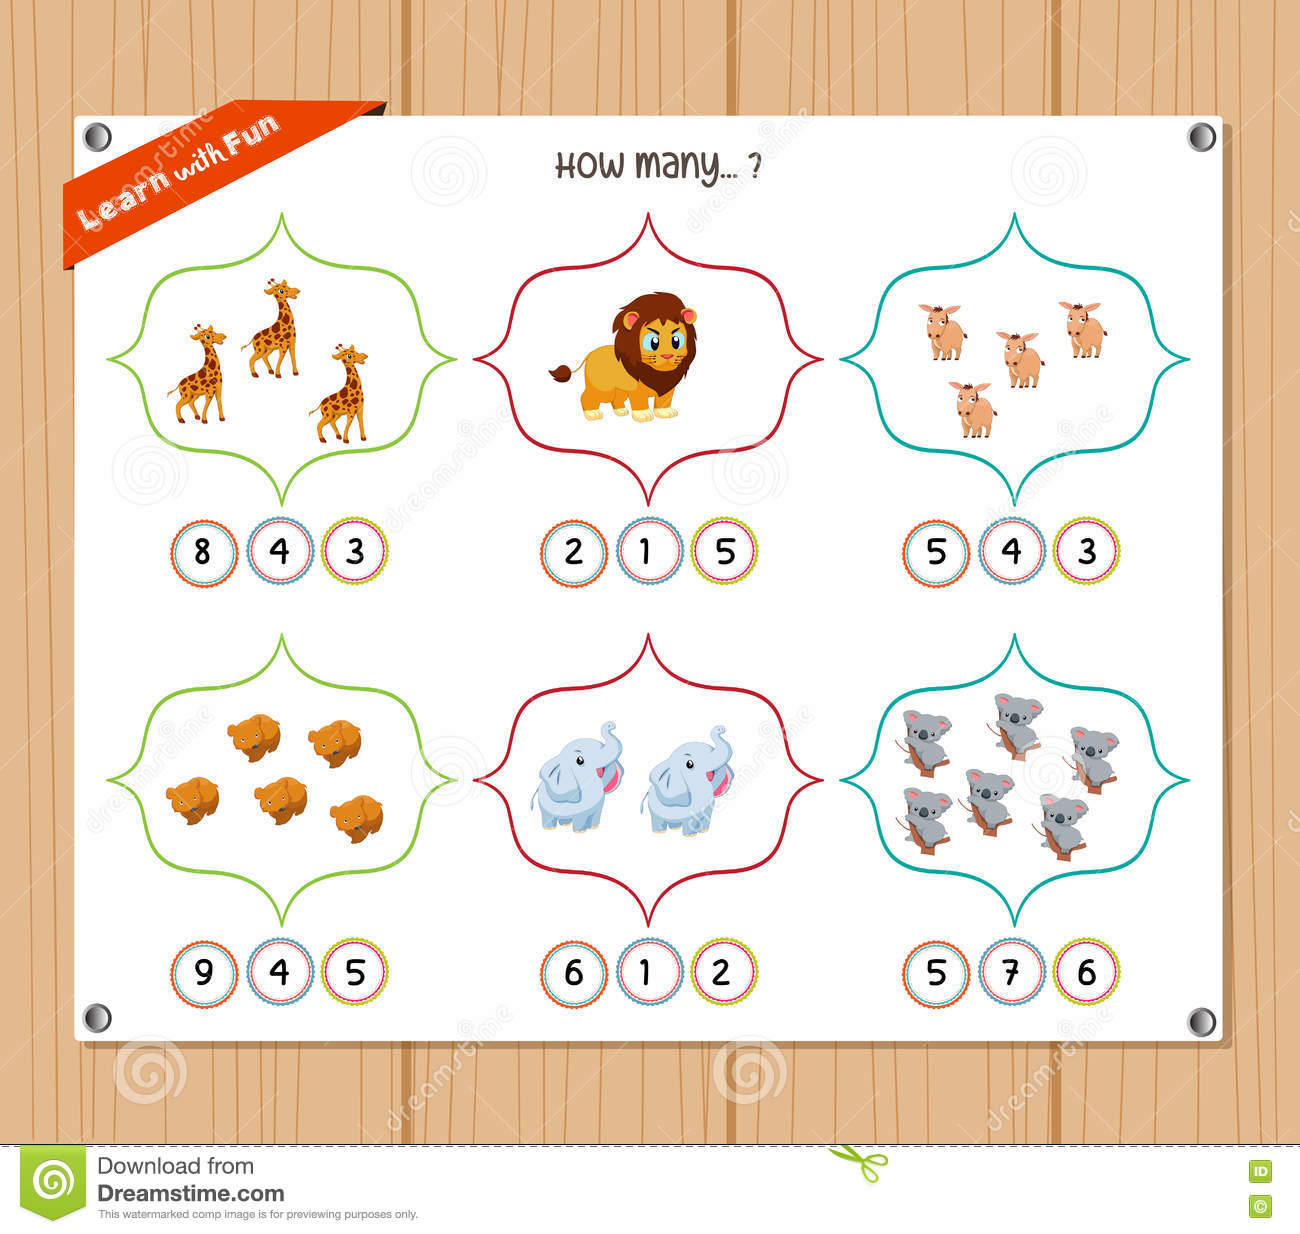 Counting Object For Kids